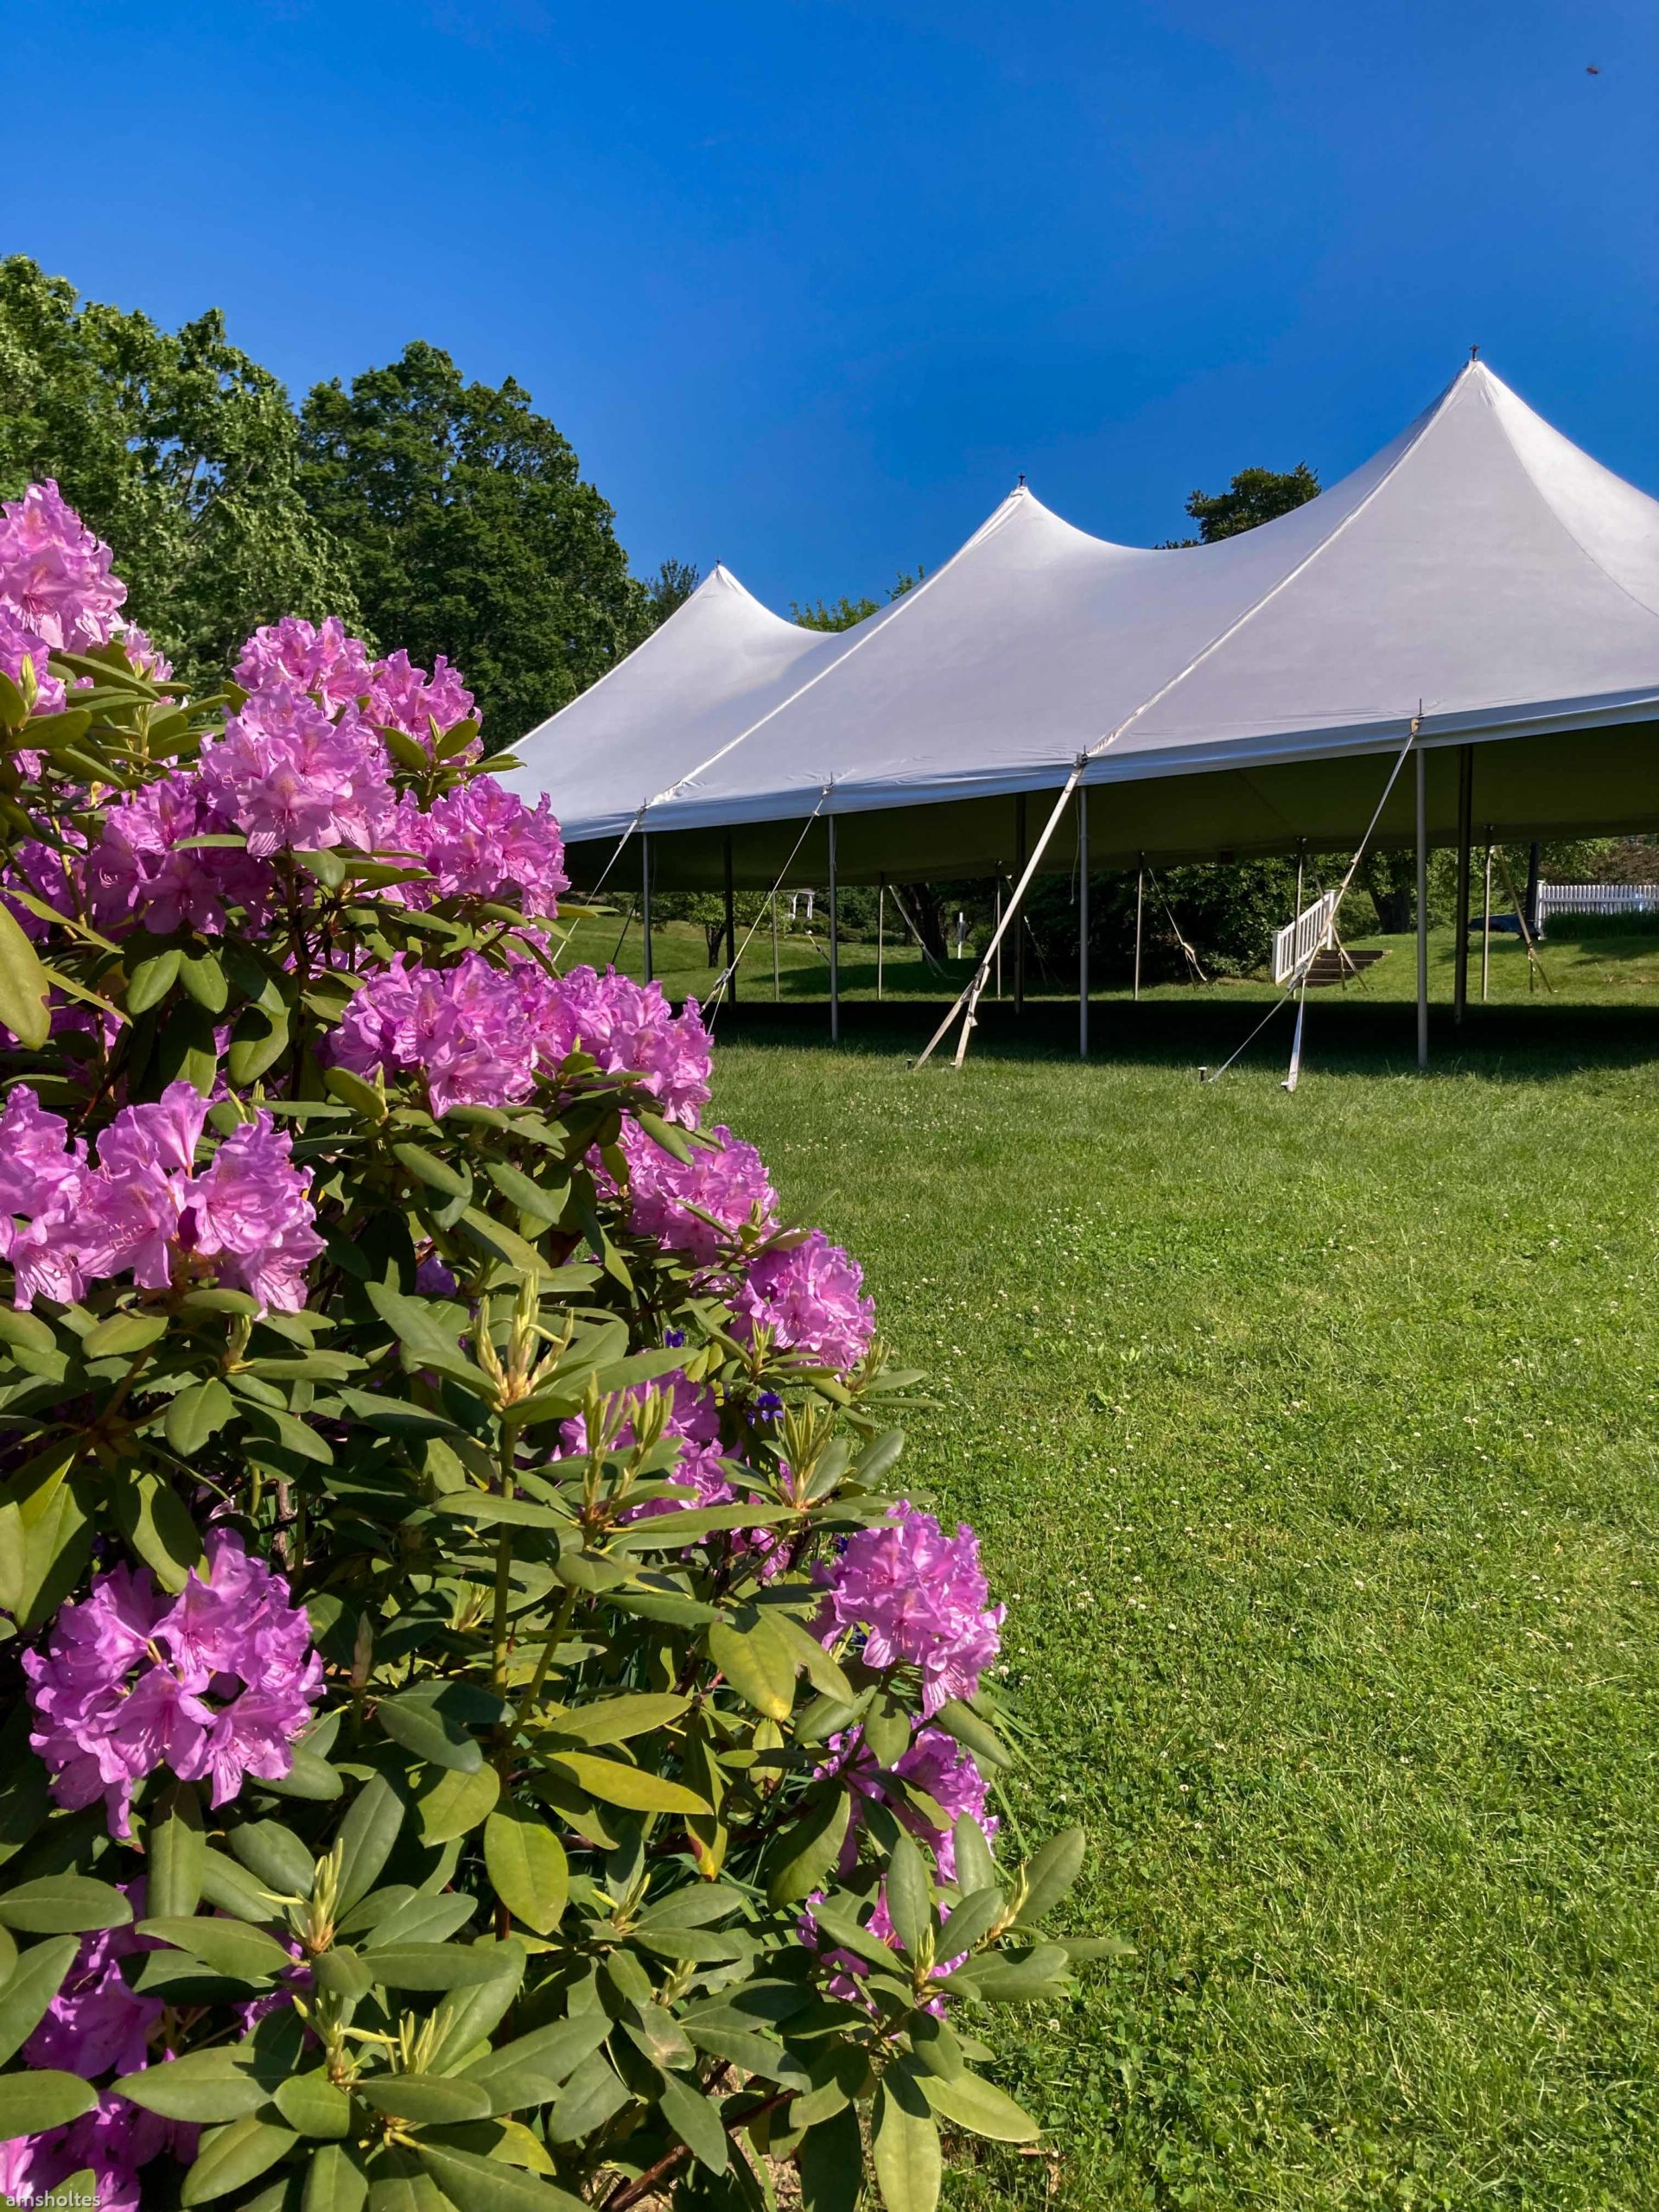 flowers with tent on lawn